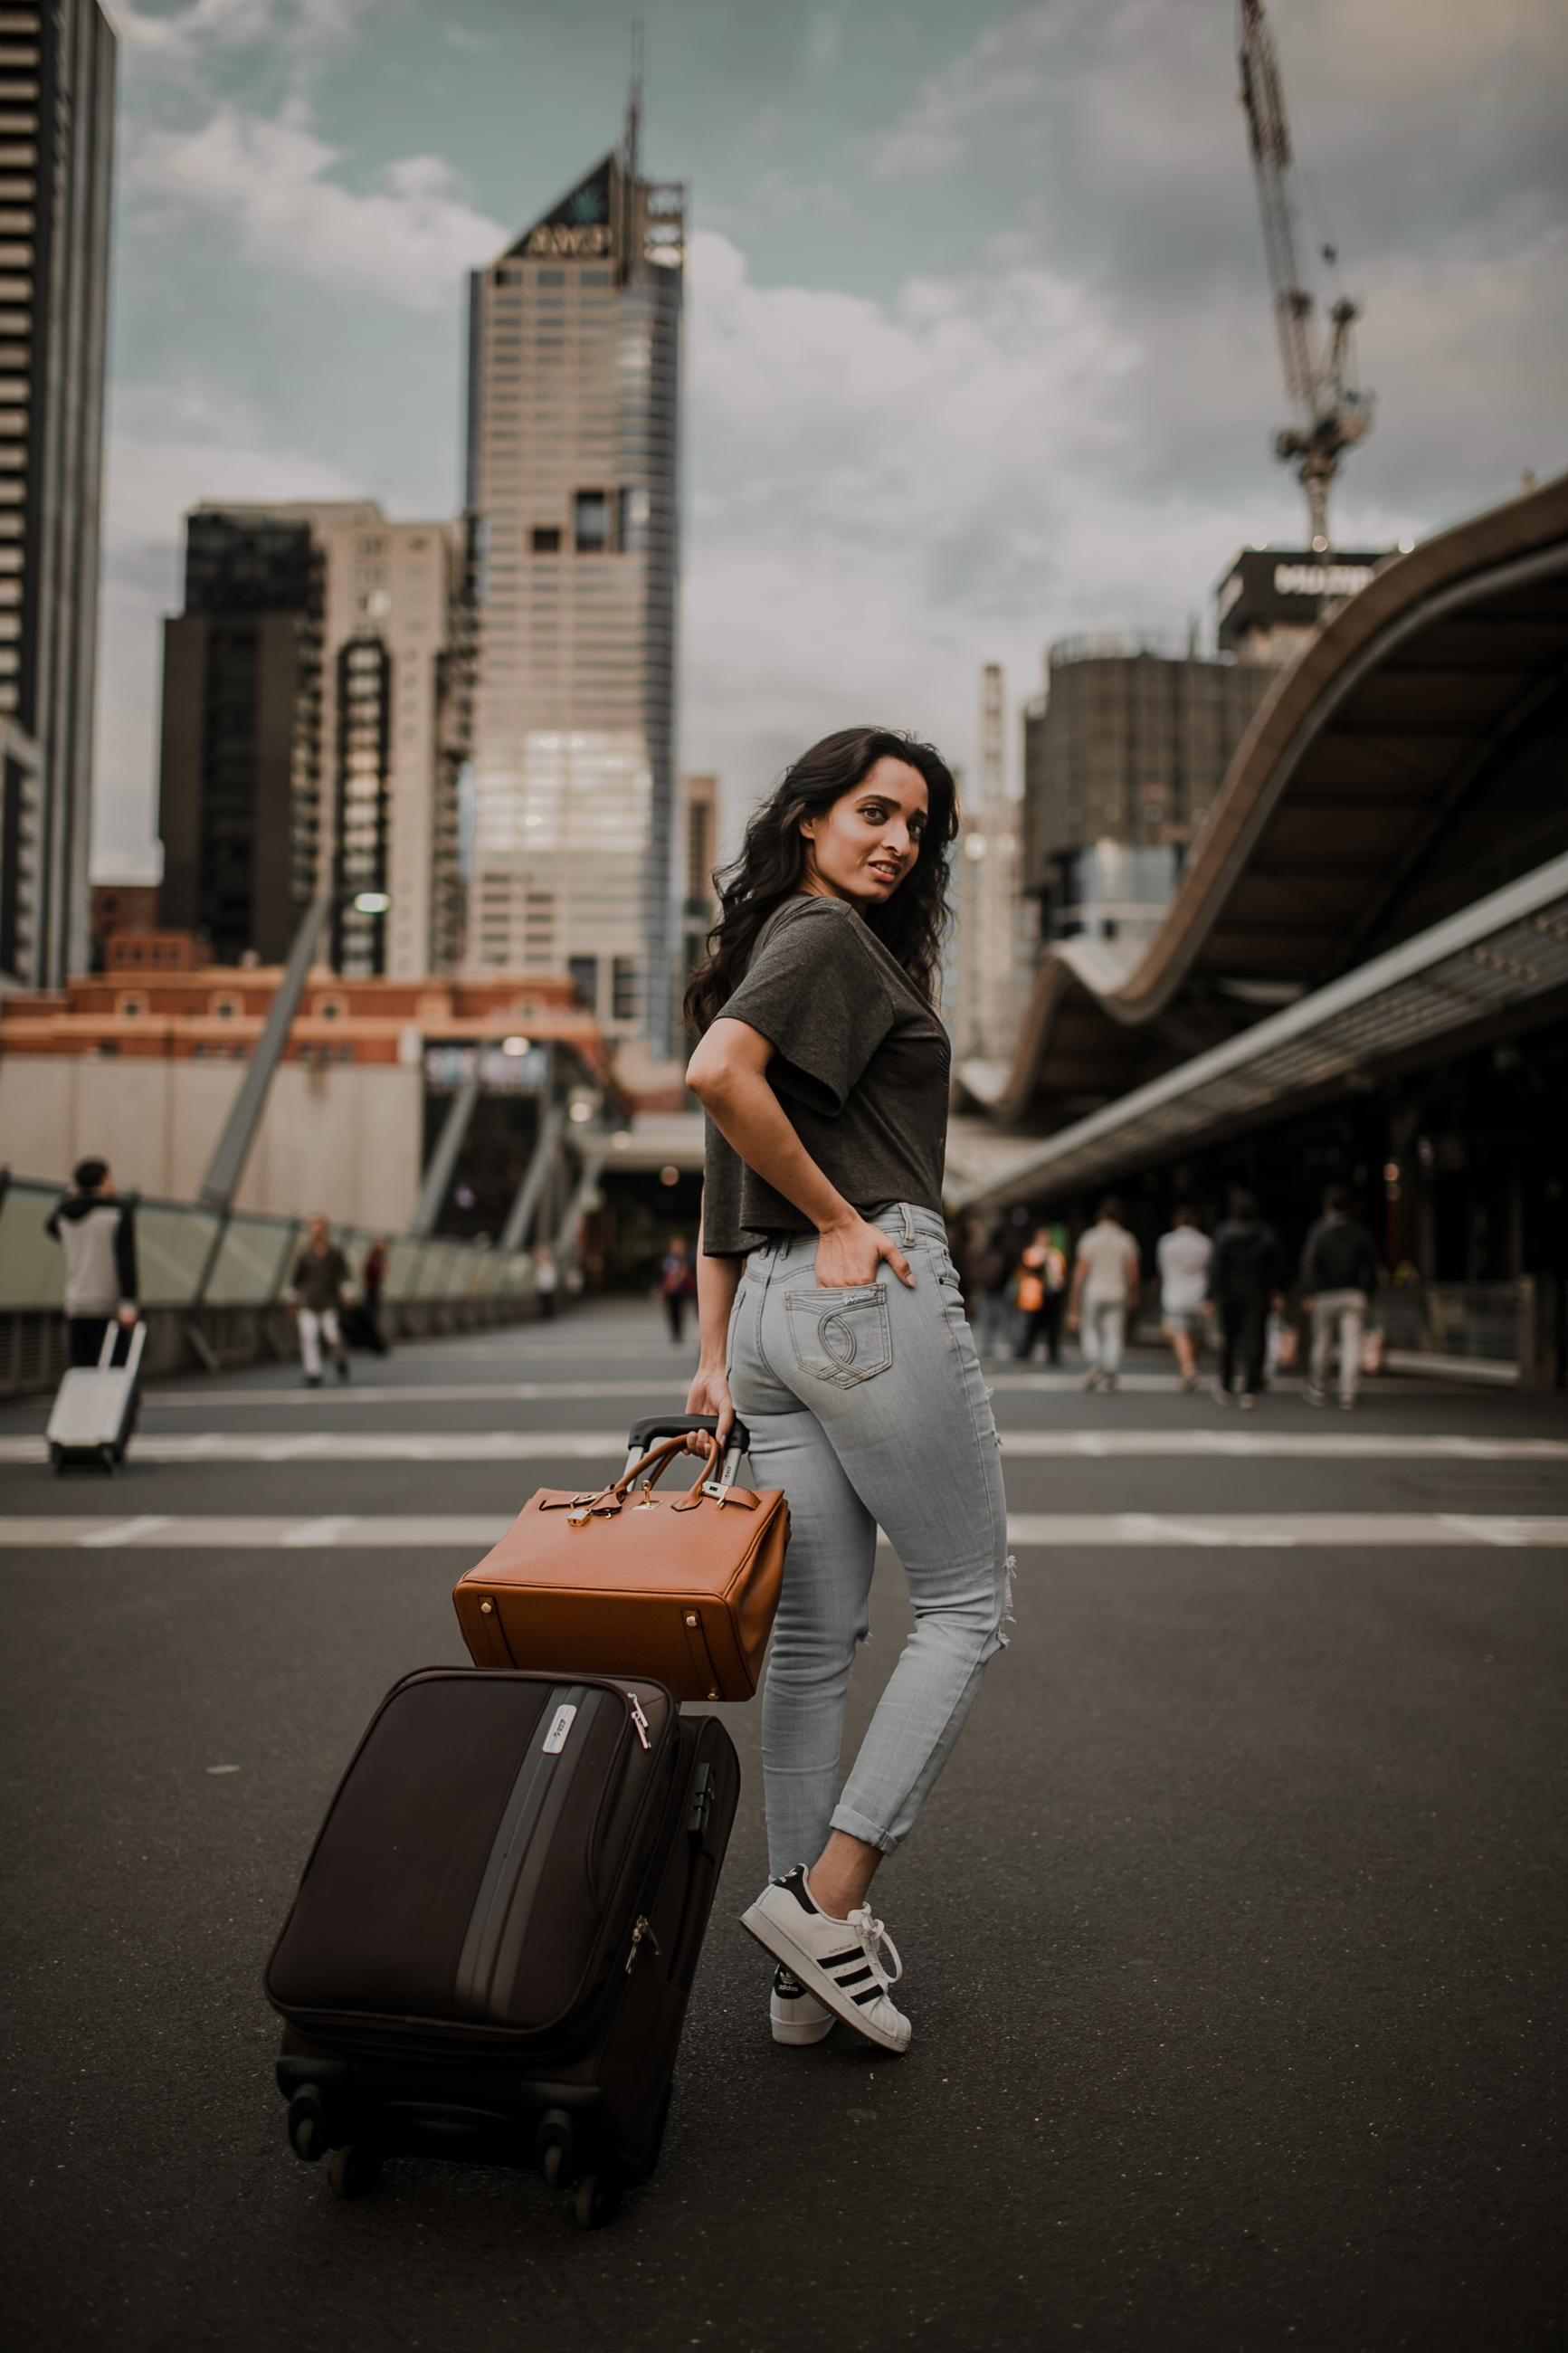 Traveling girl with carry-on luggage and tan purse wearing jeans and grey tee-shirt and white sneakers in the city